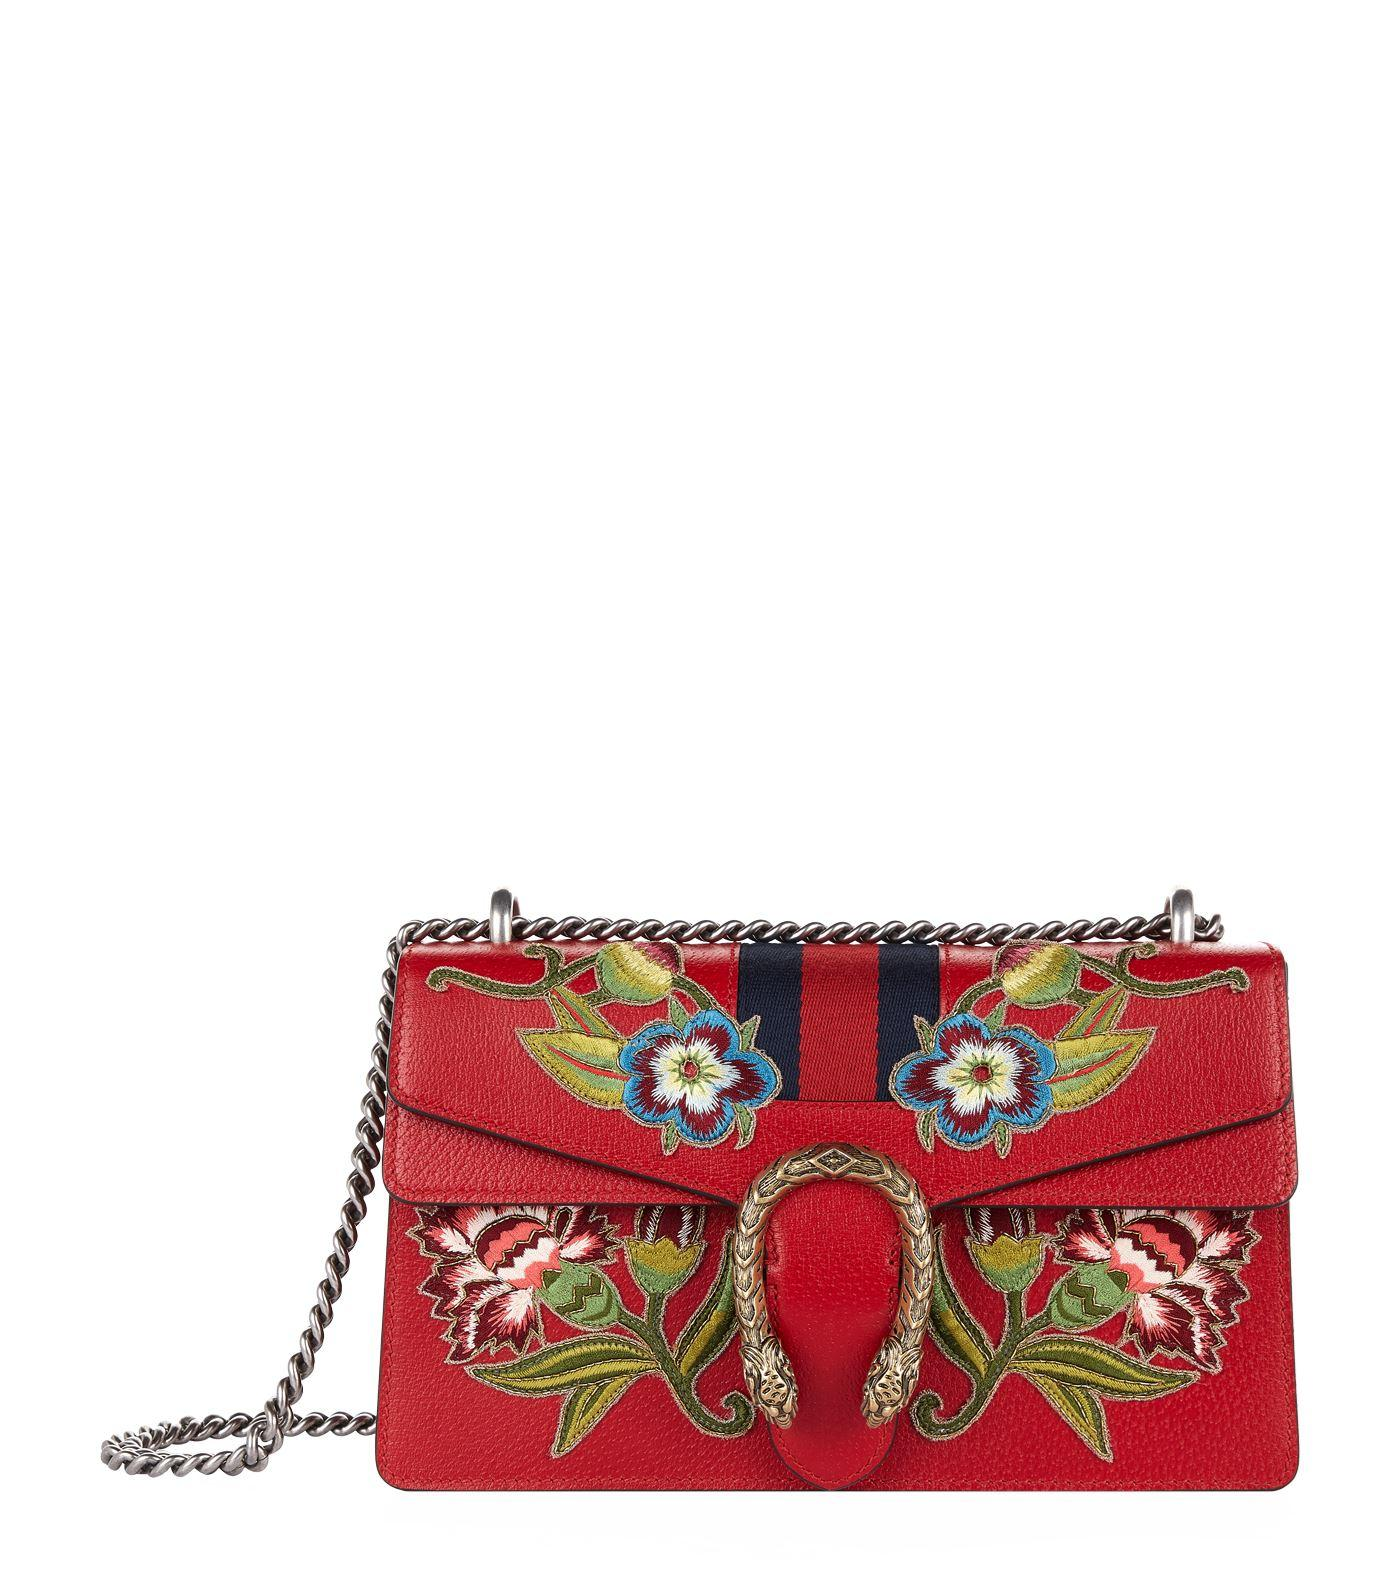 73caab43b299 Gucci Dionysus Small AppliquÉD Textured-Leather Shoulder Bag In Red ...